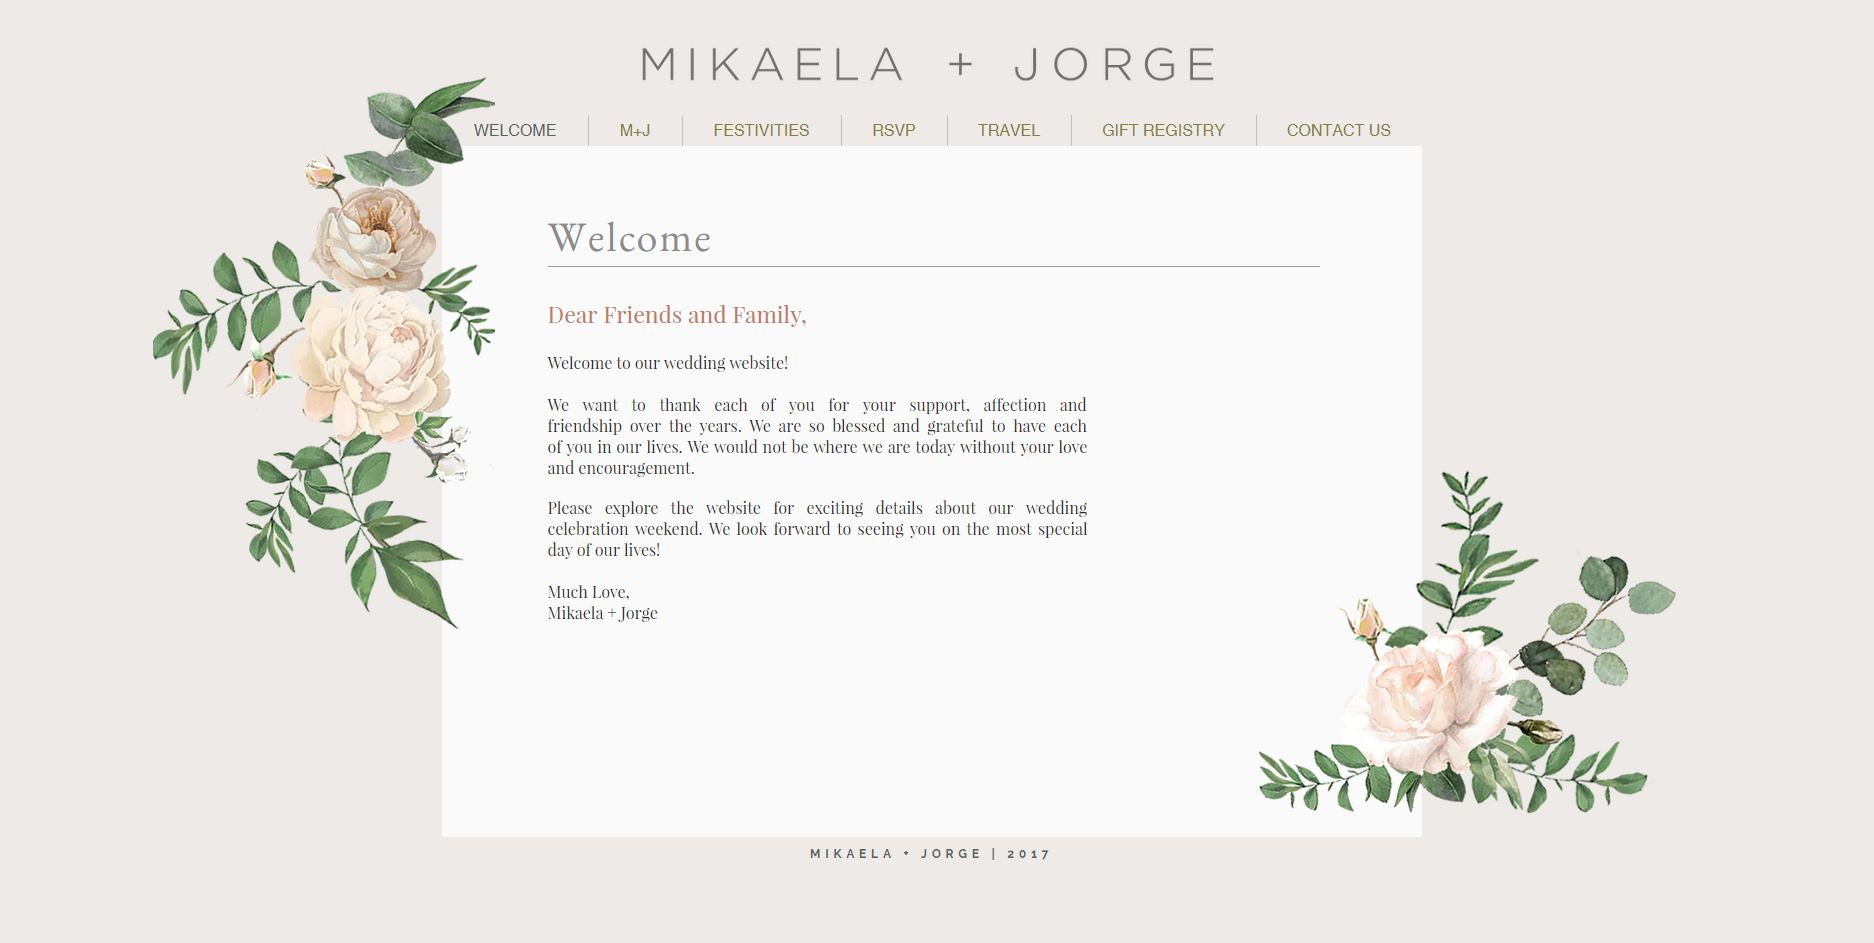 Website Welcome Page - English